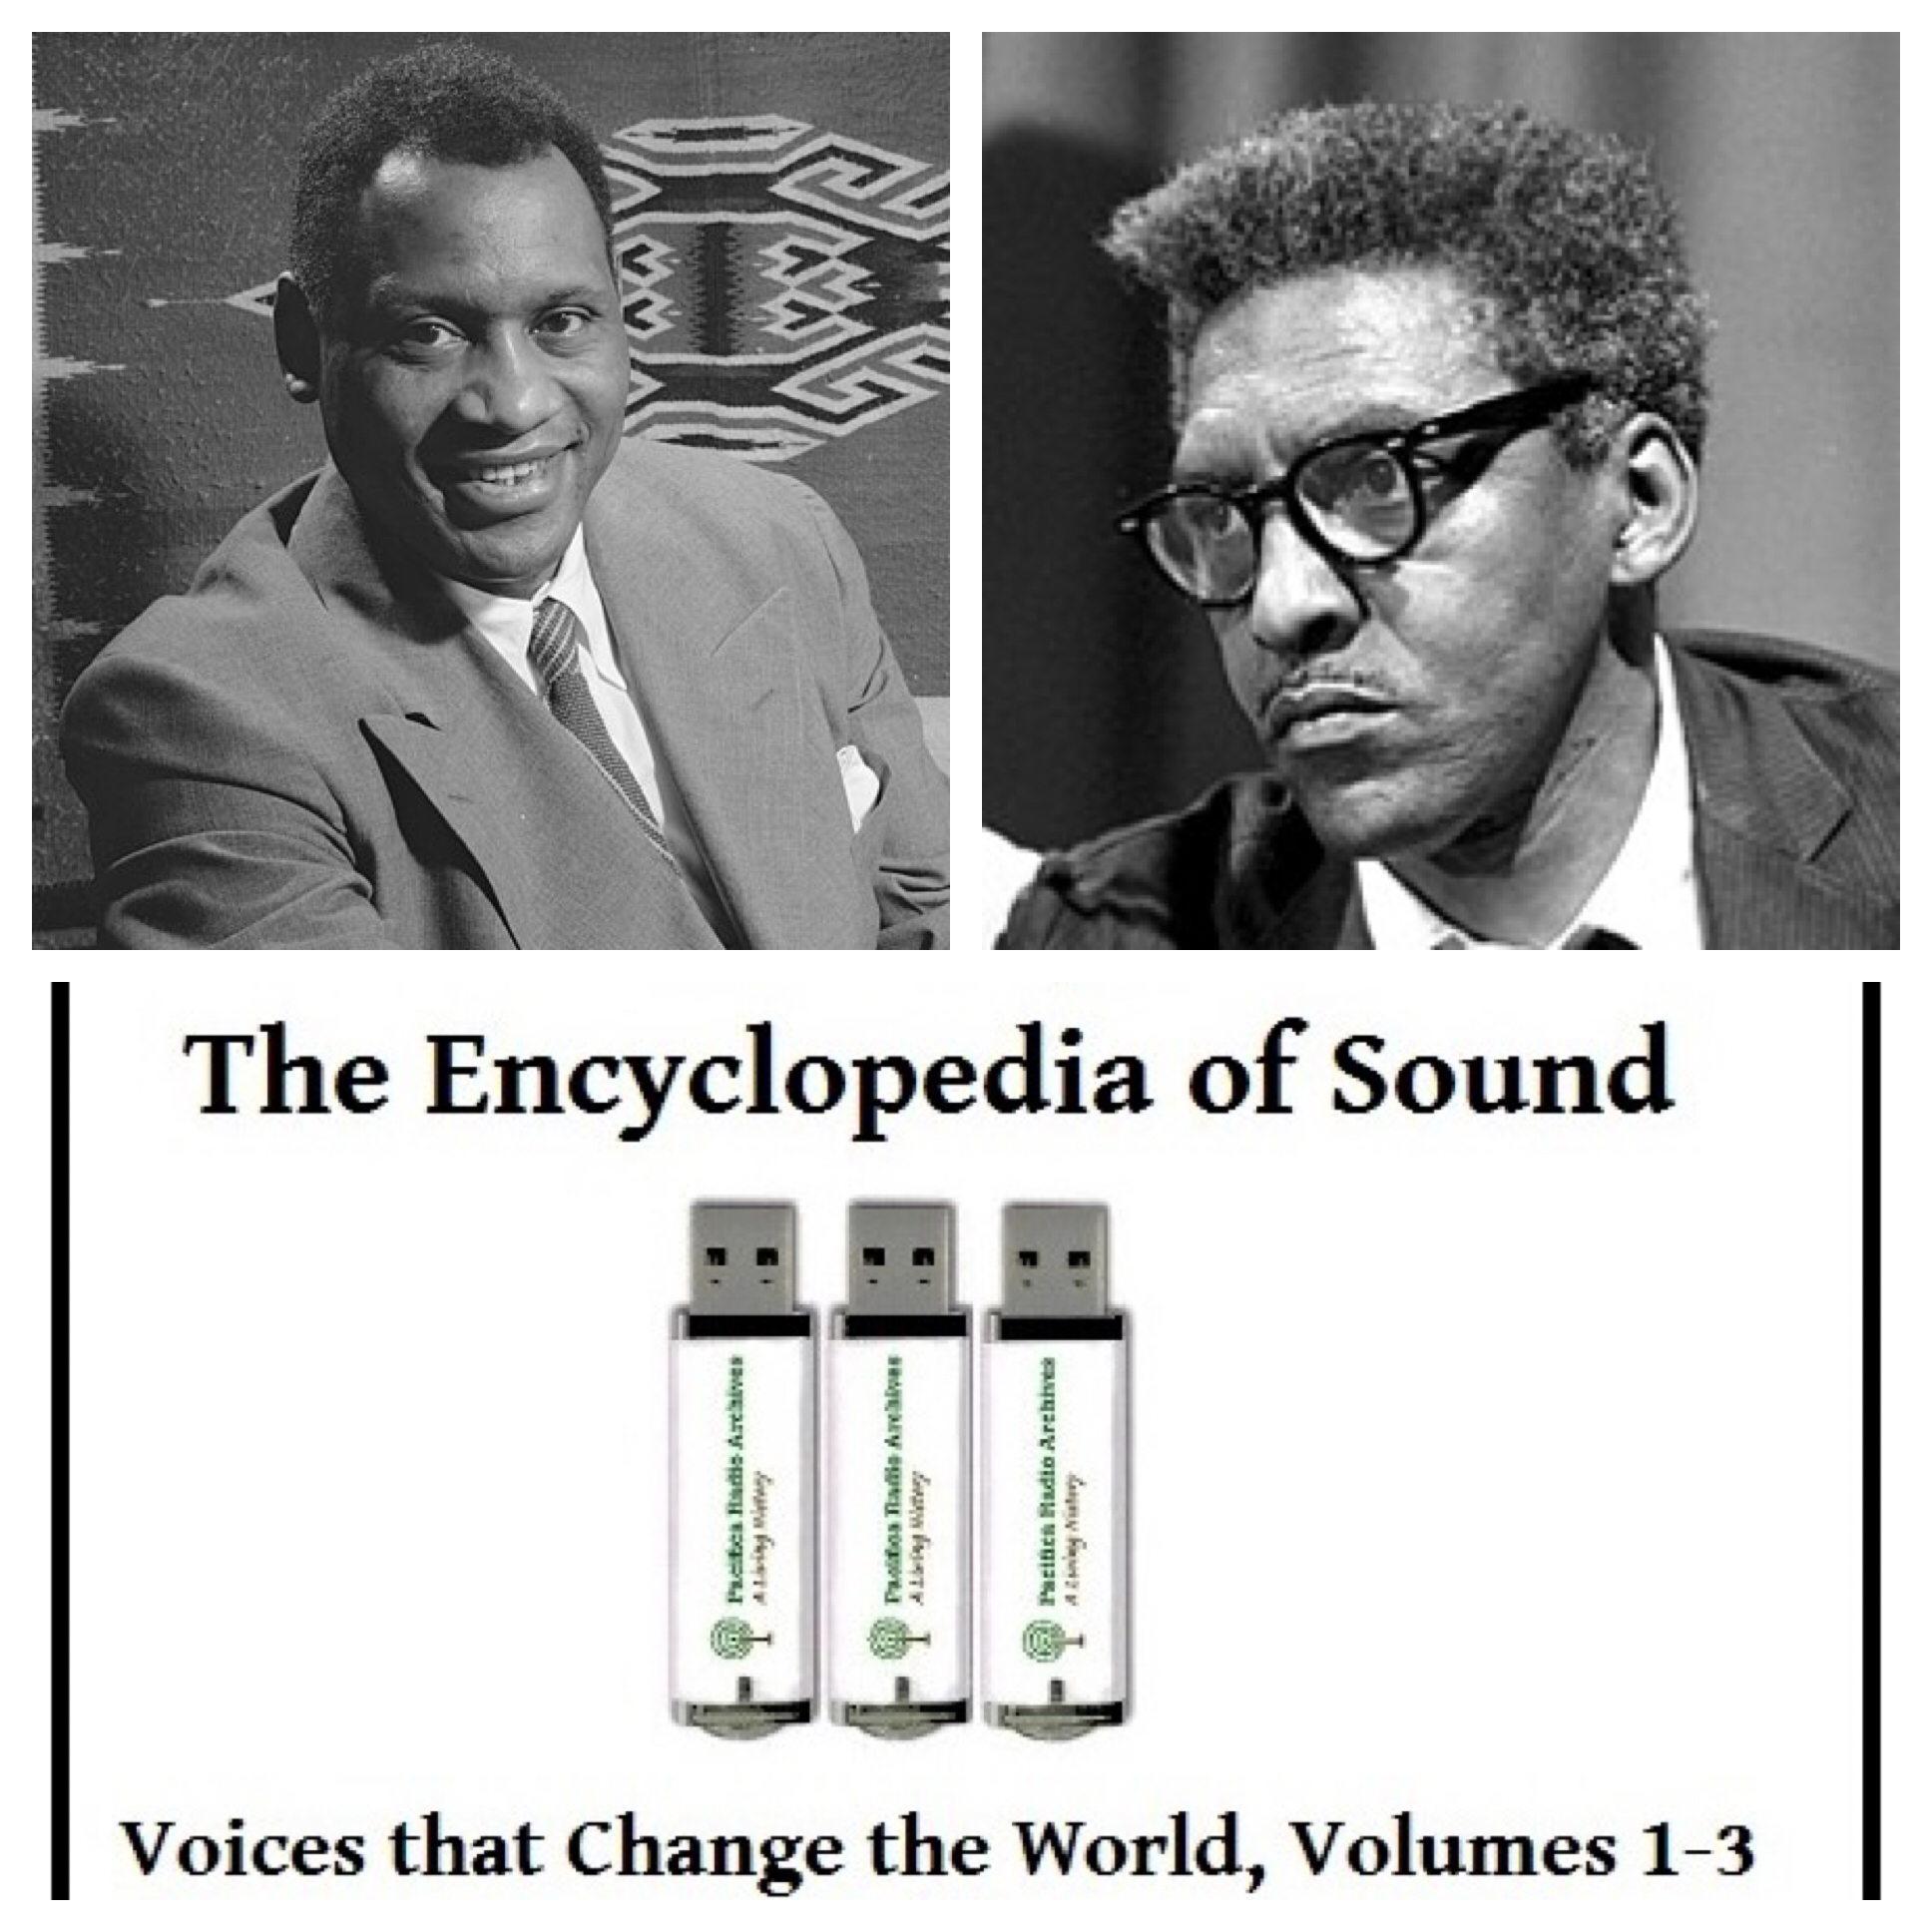 Voices Radio: Eric, Channing, KPFK's Alan Minsky, and Pacifica Radio's Director of Archives Mark Torres discuss the history-making, and humanity-improving work that Pacifica Radio Archives has captured and features in a collection of audio recordings called The Encyclopedia of Sound.